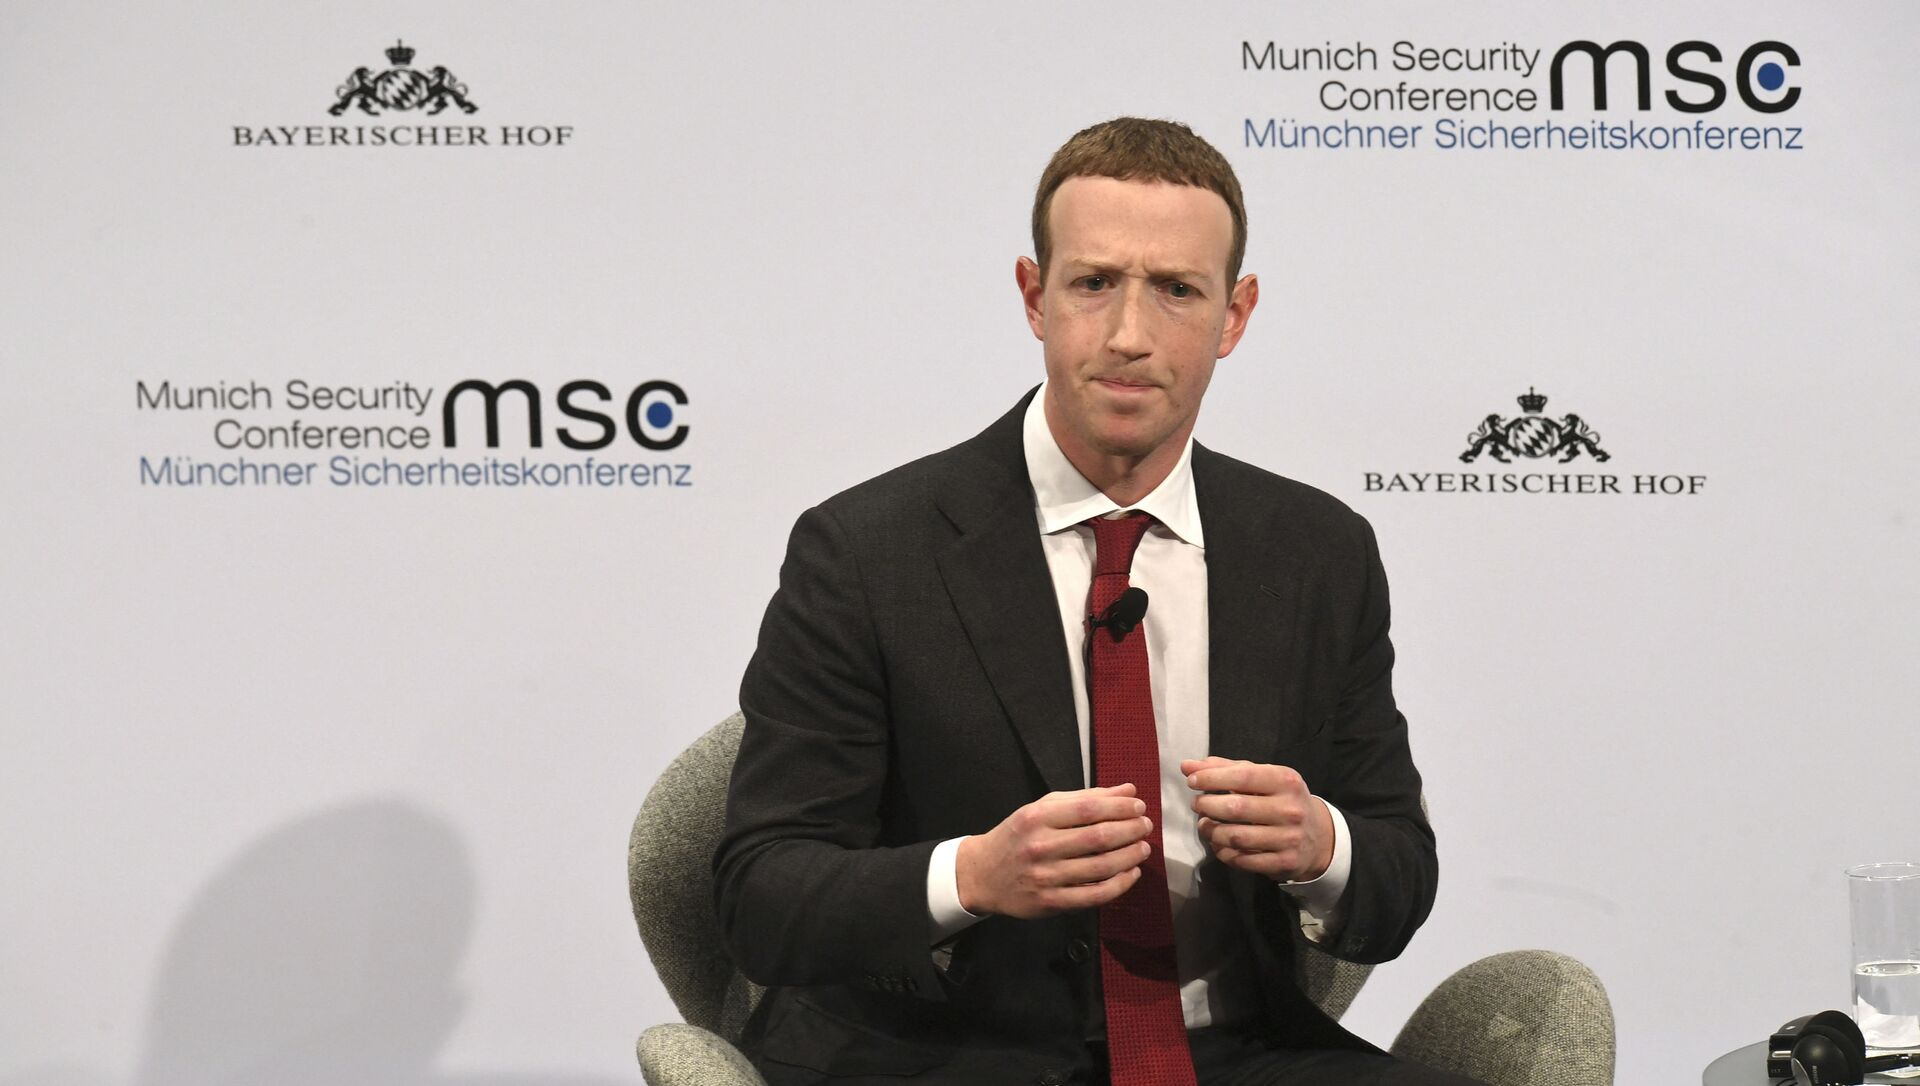 The founder and CEO of Facebook Mark Zuckerberg speaks during the 56th Munich Security Conference (MSC) in Munich, southern Germany, on February 15, 2020. - The 2020 edition of the Munich Security Conference (MSC) takes place from February 14 to 16, 2020.  - Sputnik International, 1920, 05.08.2021